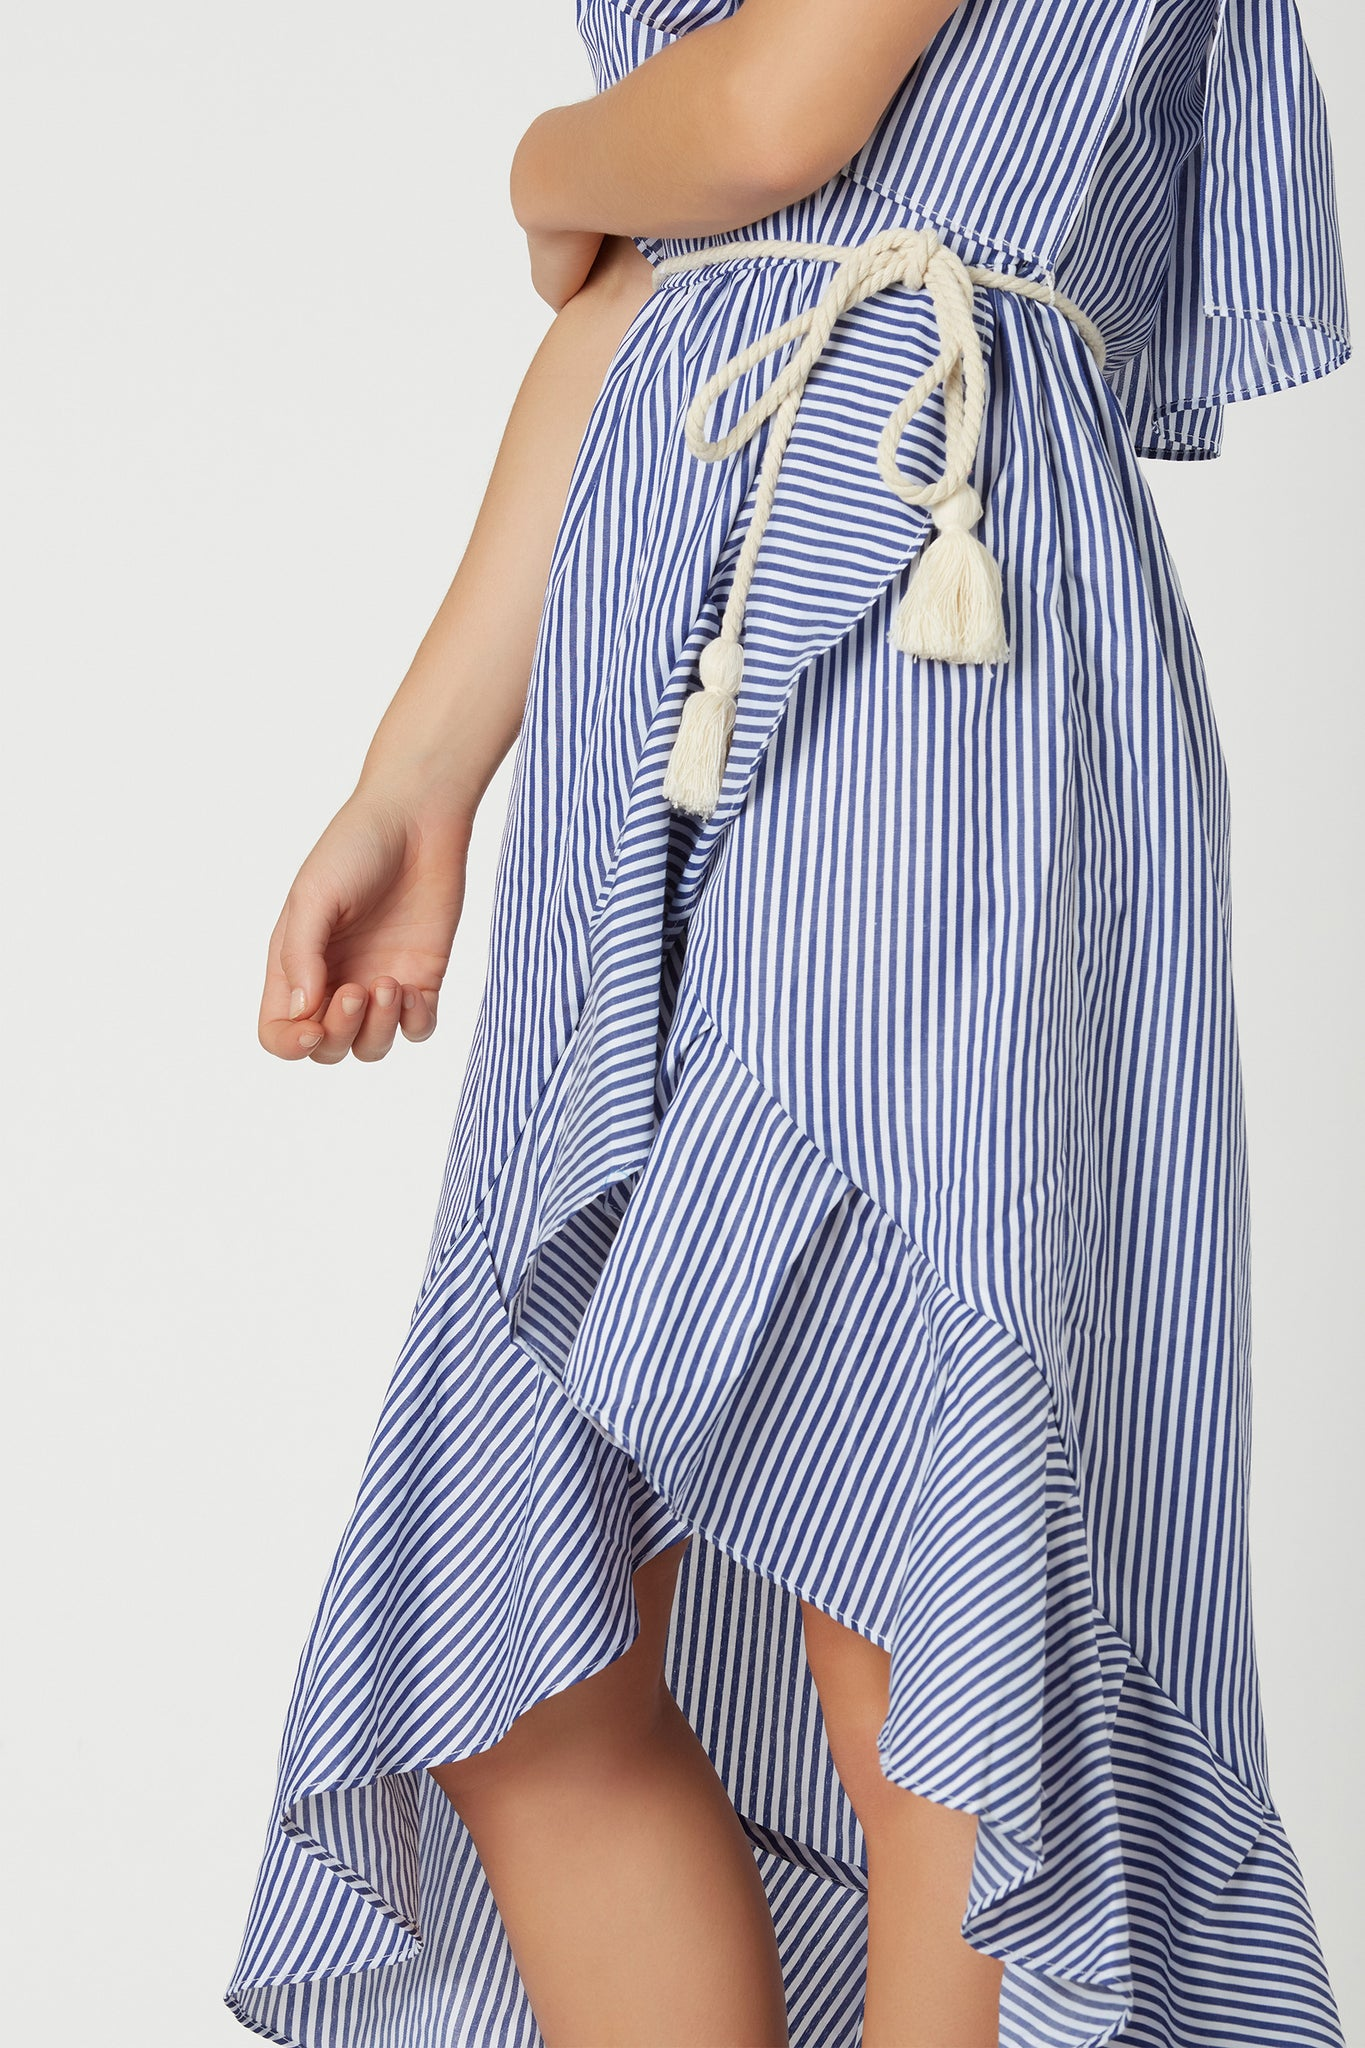 Chic strapless tube midi dress with nautical stripe patterns throughout. Tiered design with roped waist tie detailing and ruffle trim throughout.